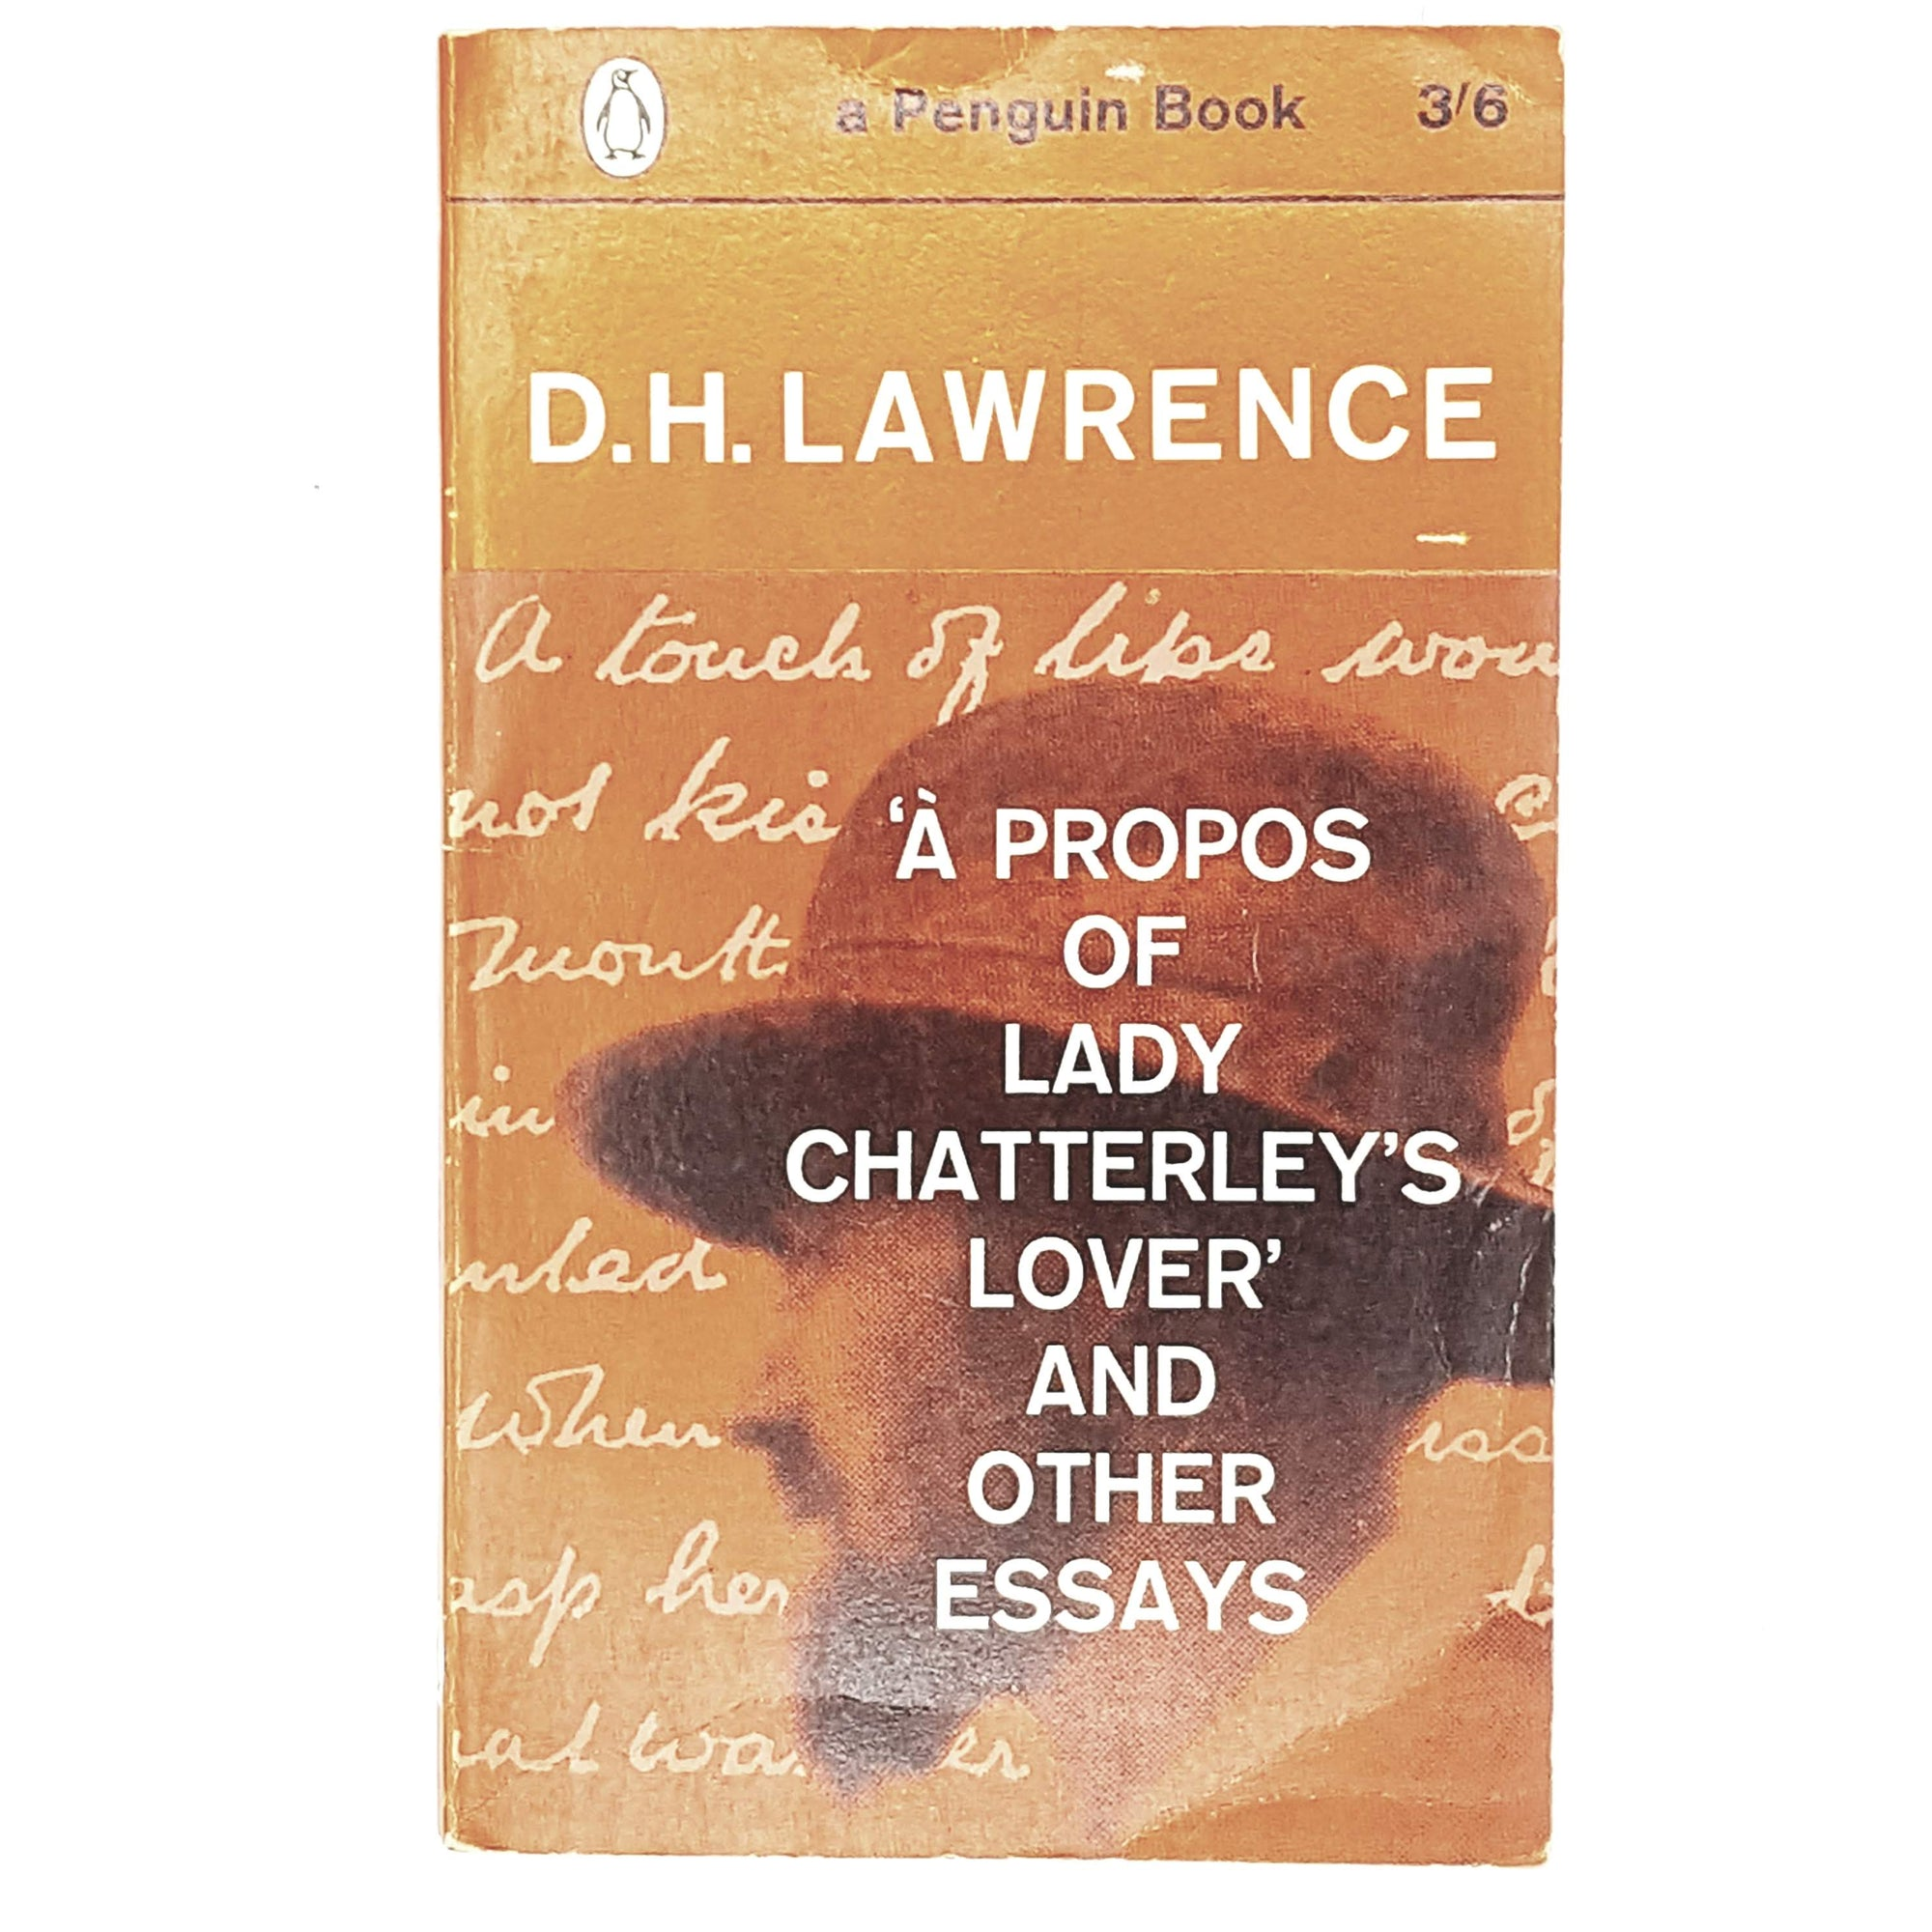 orange-penguin-dh-lawrence-vintage-book-country-house-library